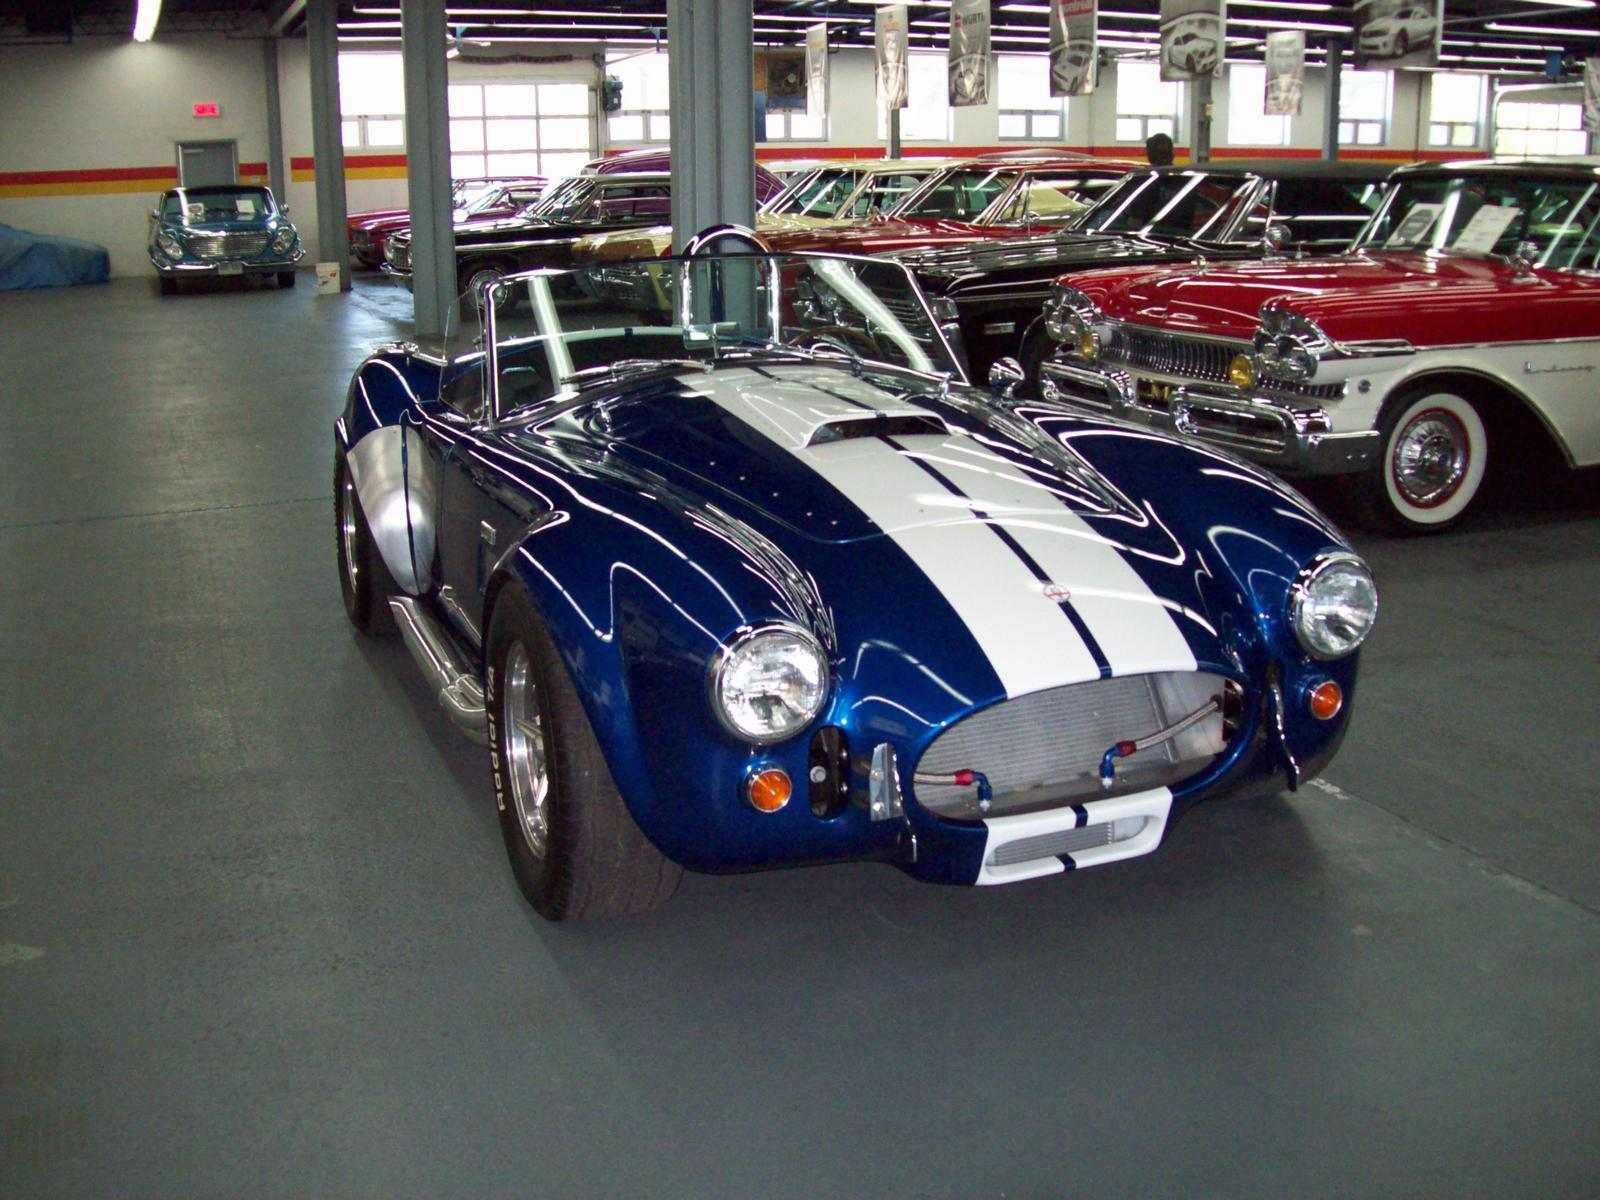 Used 1966 AC Cobra Replica for sale in Saint-Léonard - John Scotti ...